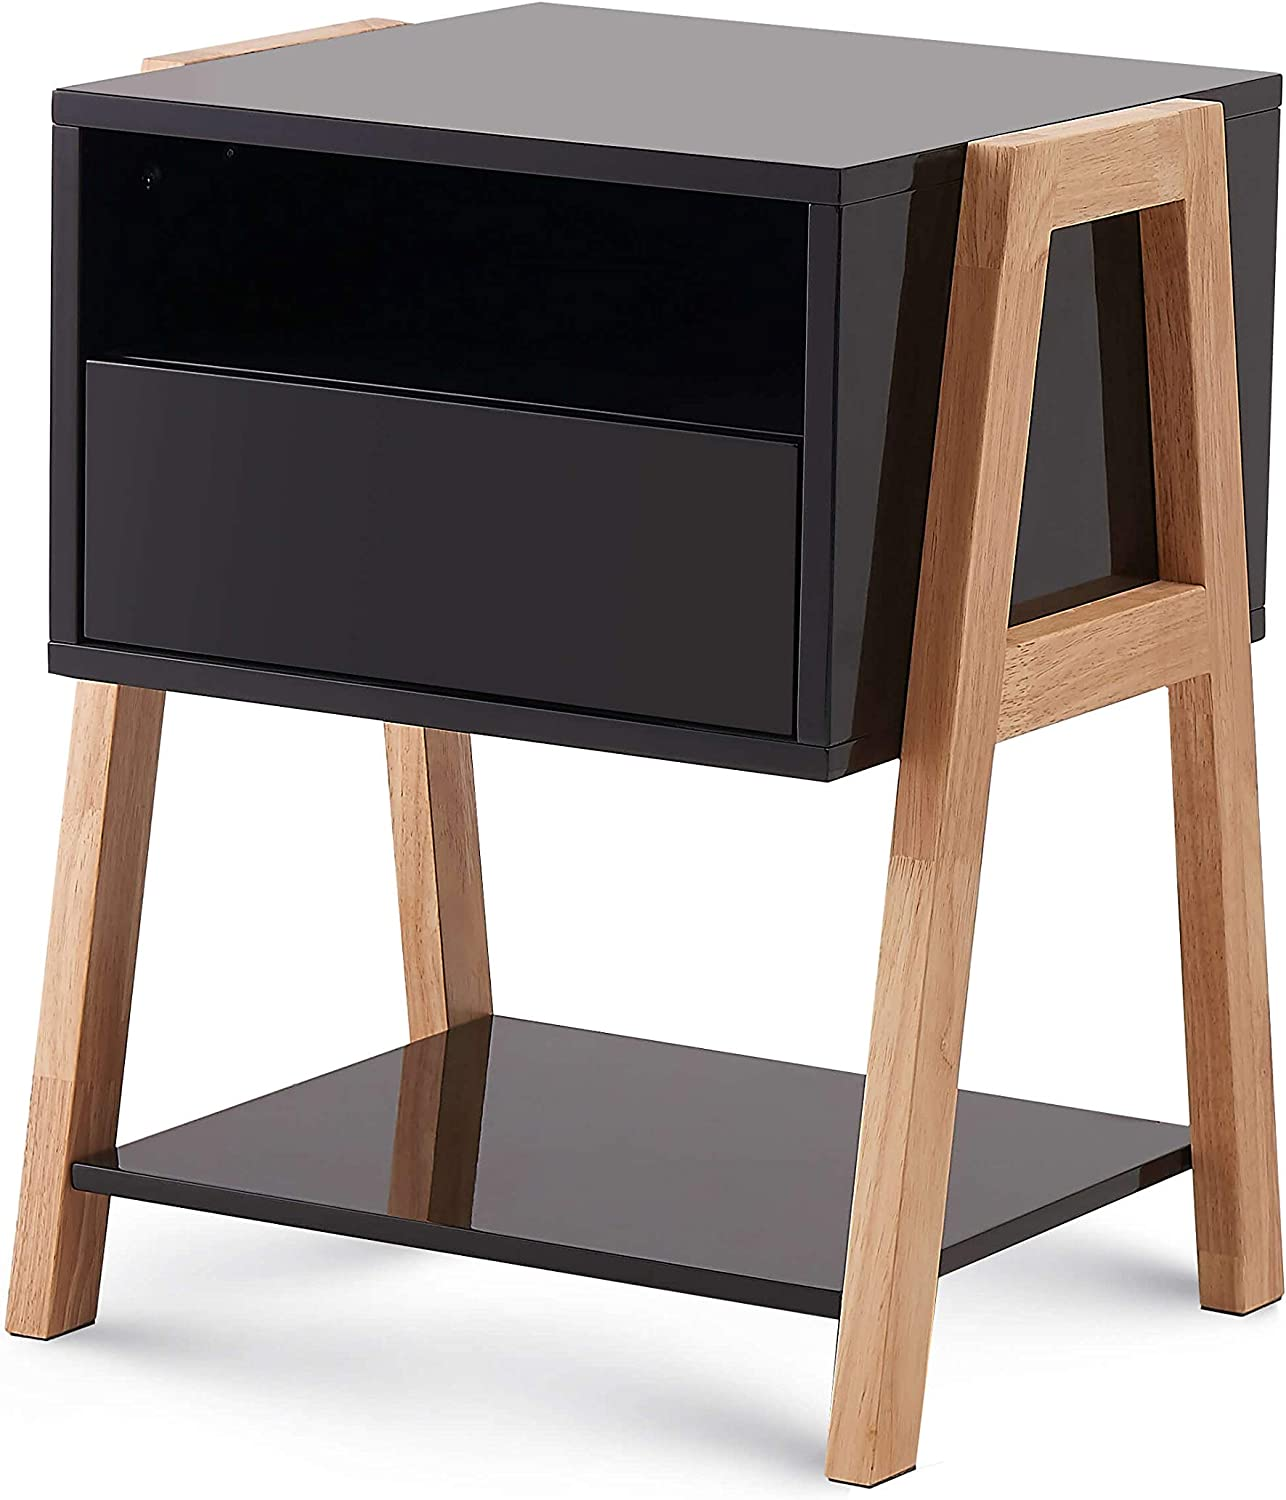 TaoHFE End Table with Drawer 3-Tier